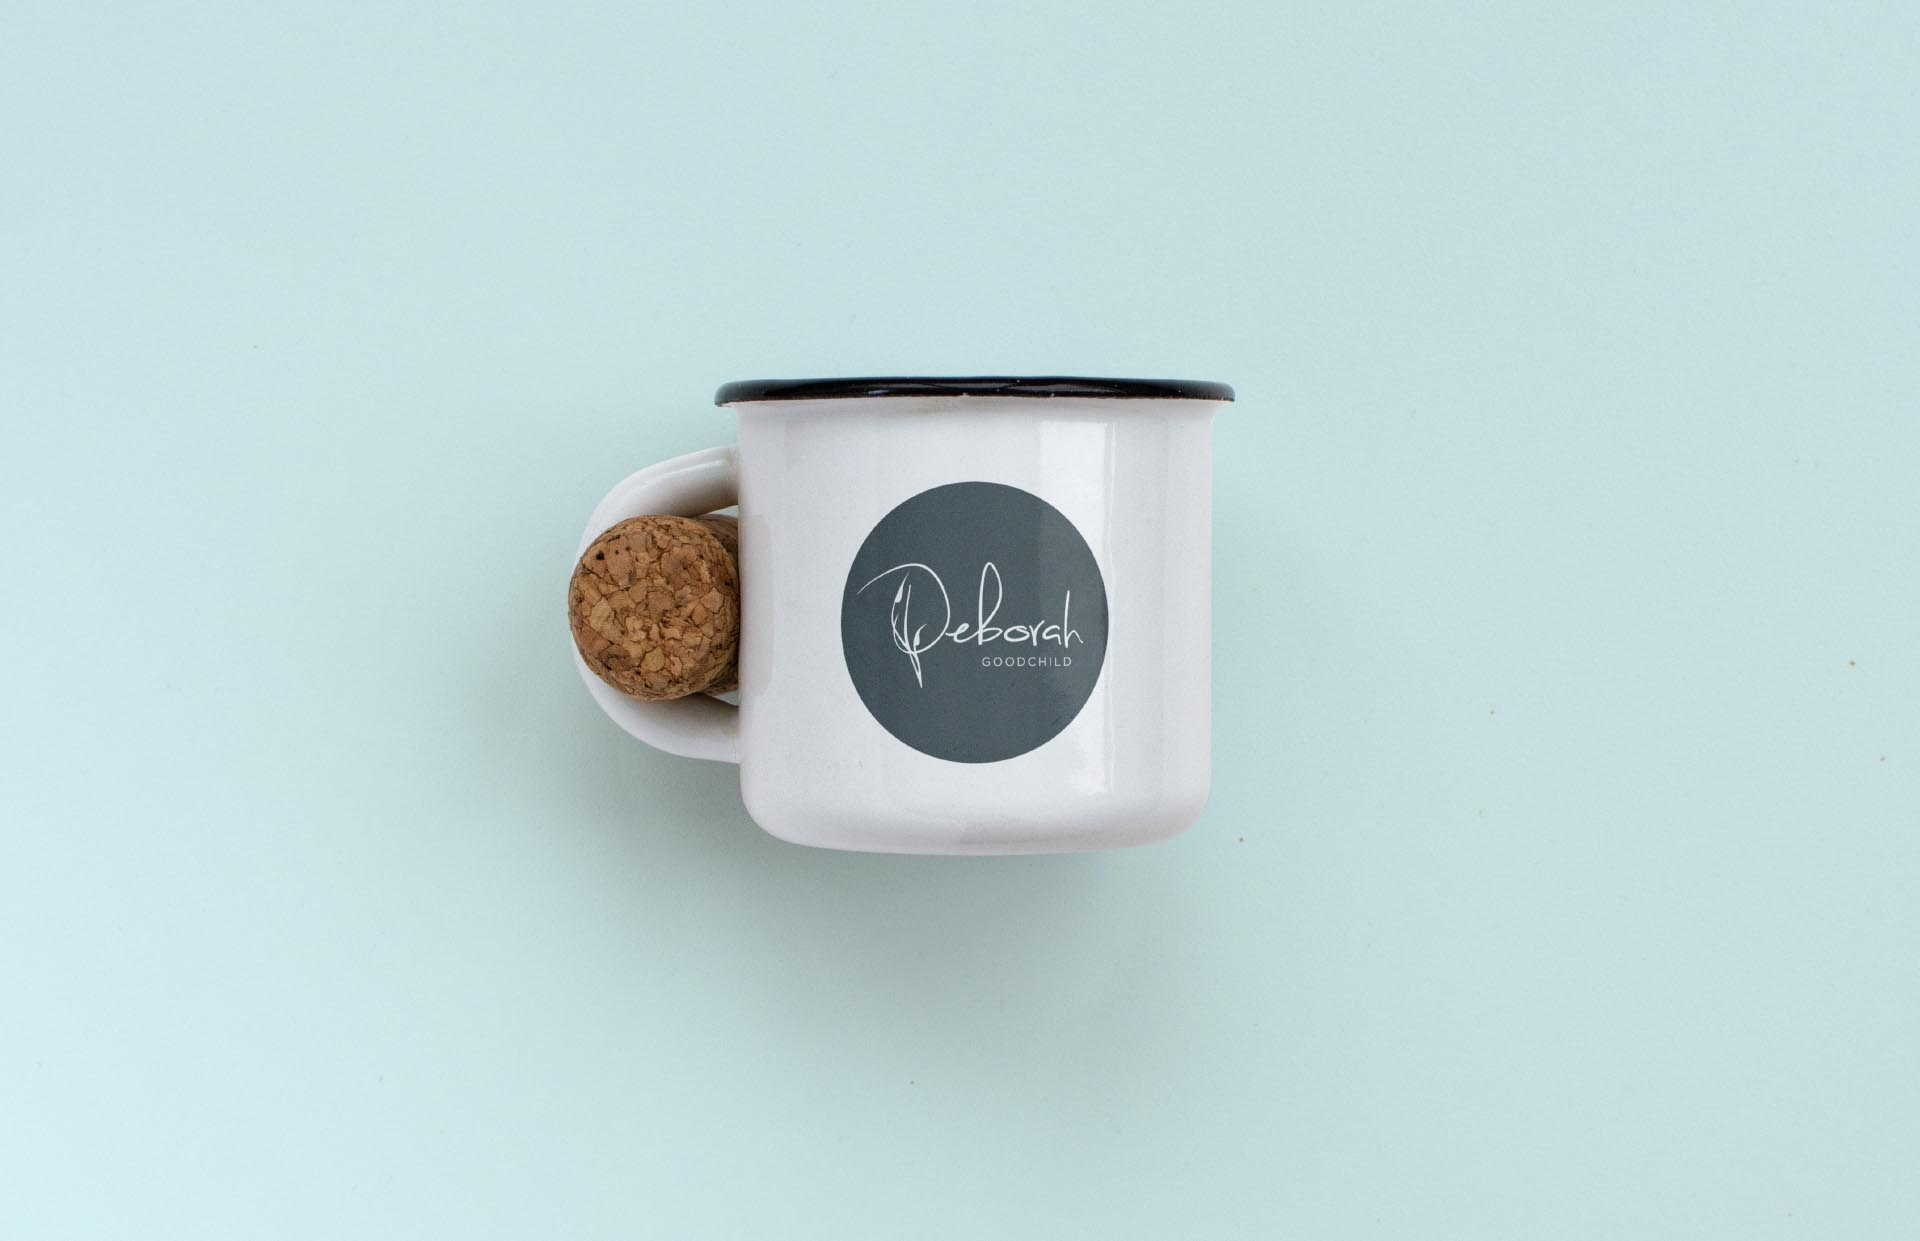 Bath-Property-Branding-Branded-mug